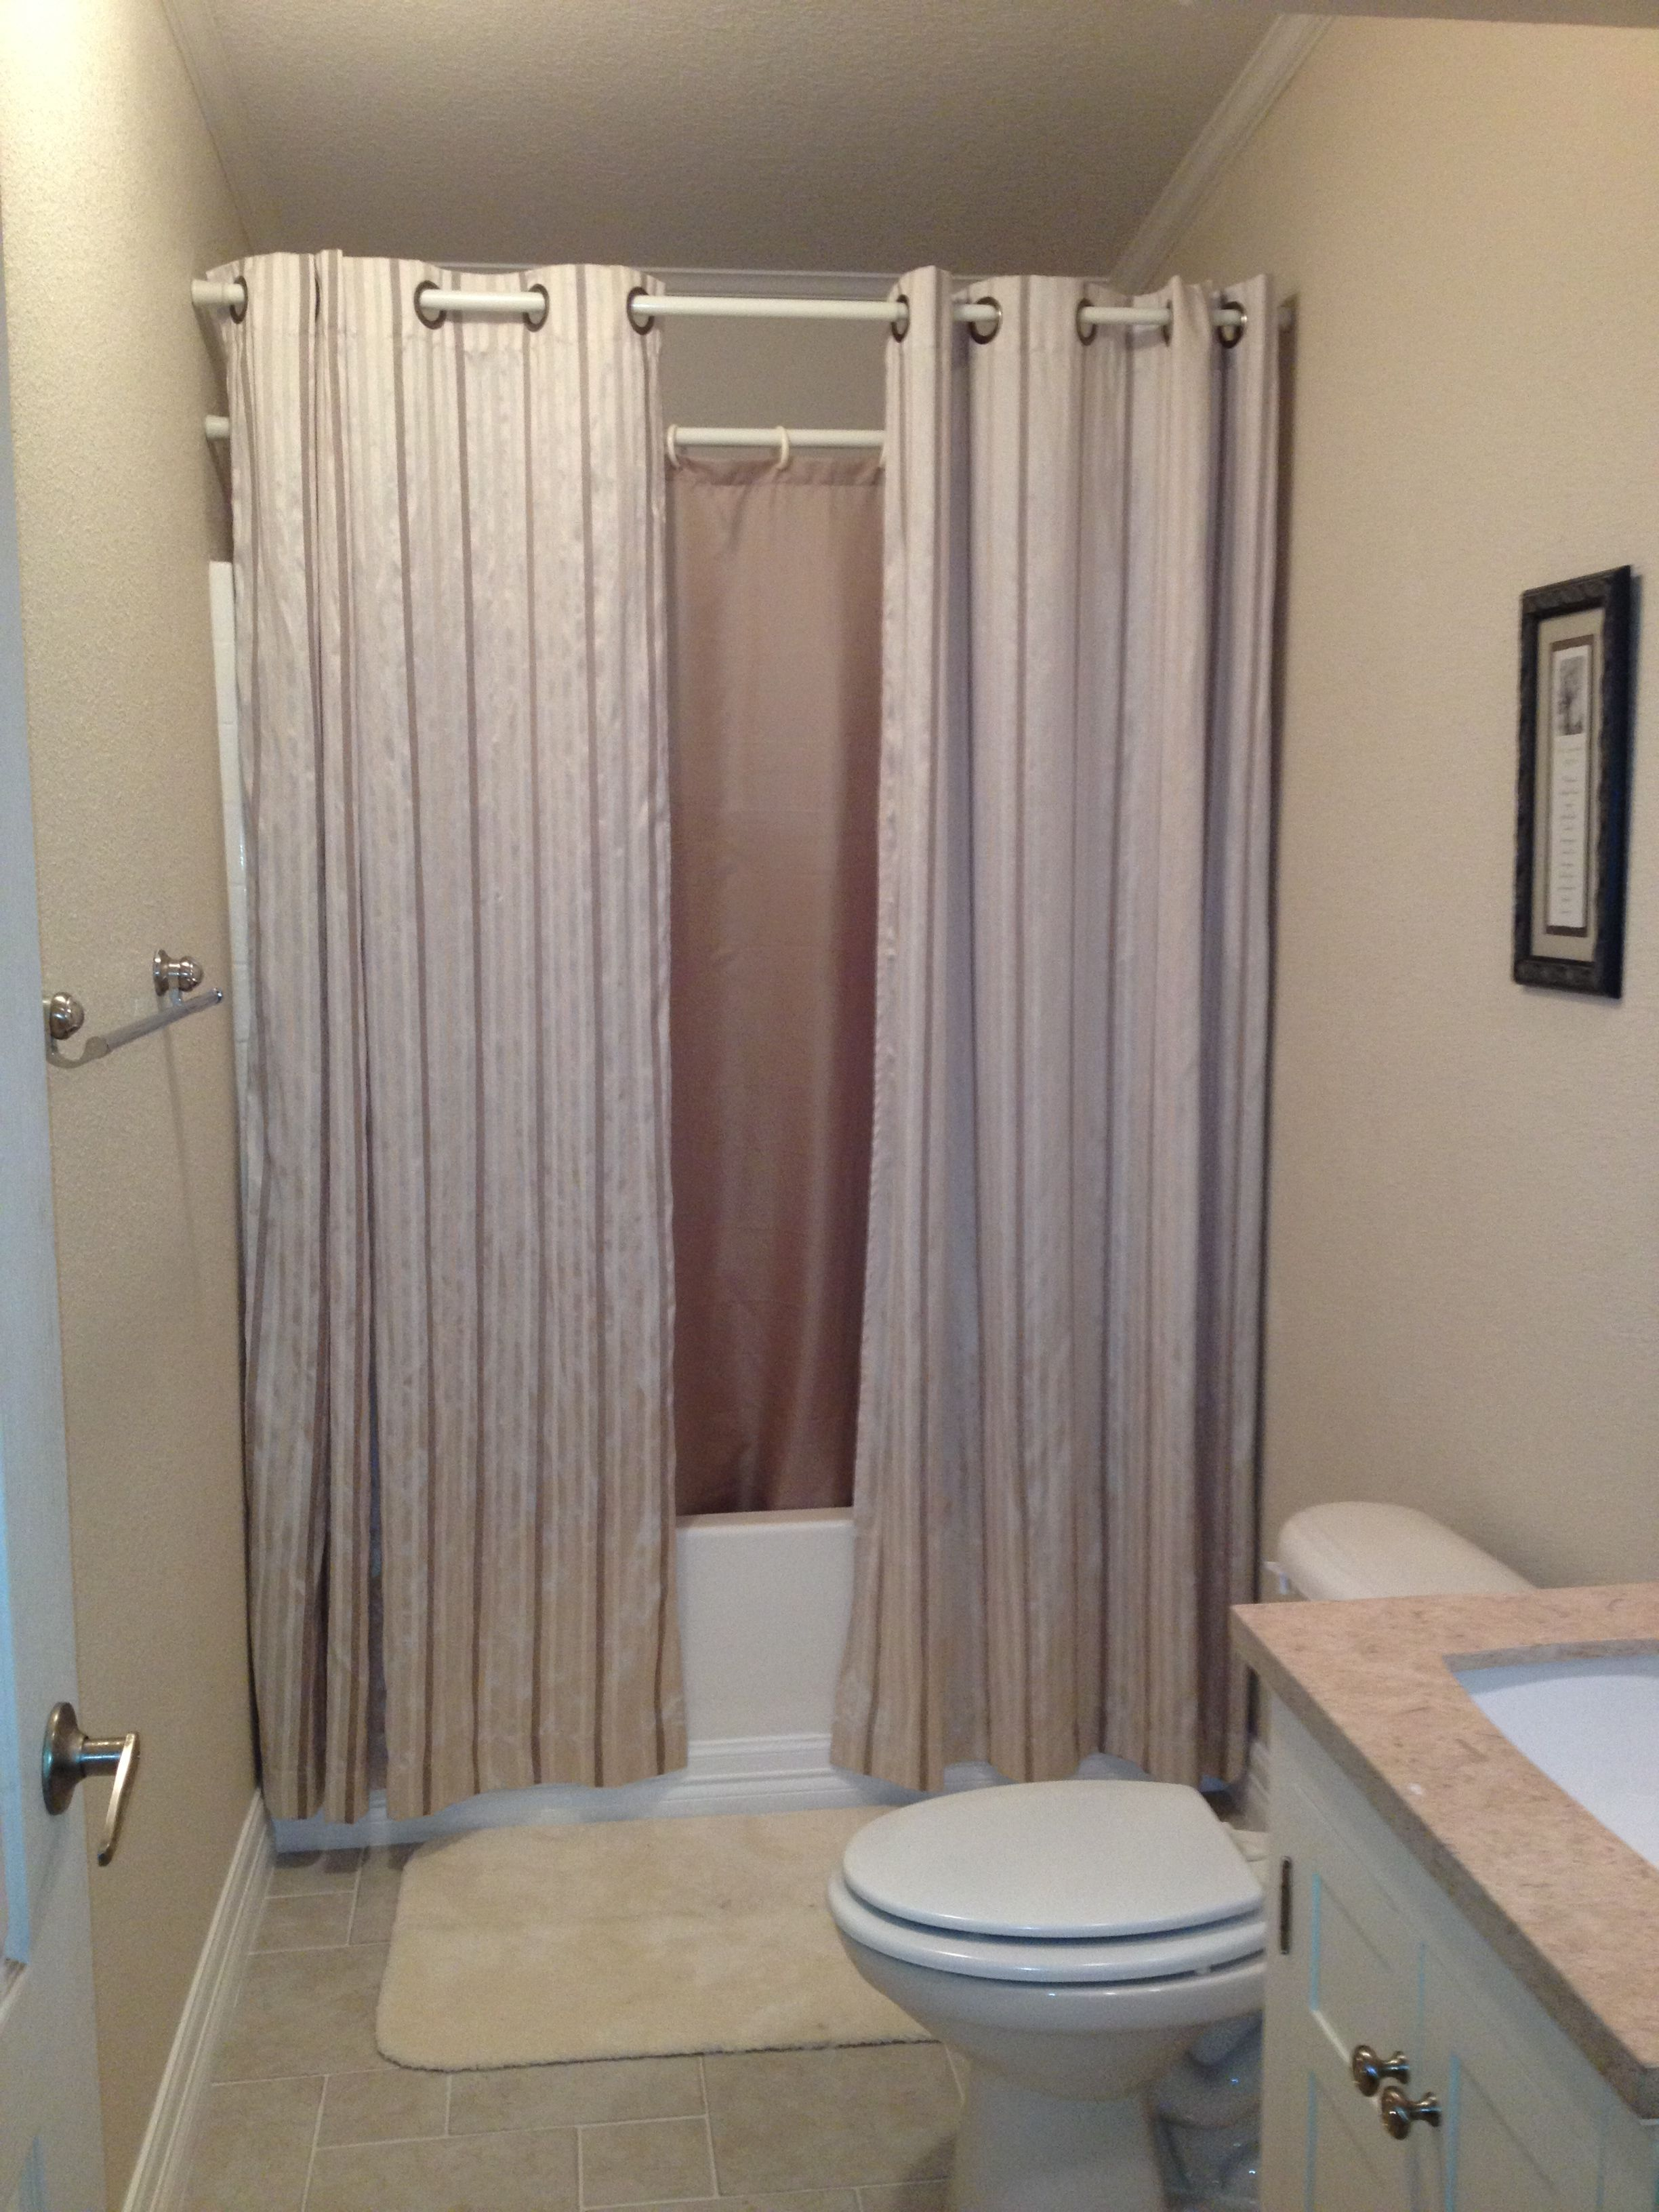 Bathroom Shower Curtain Hanging Shower Curtains To Make Small Bathroom Look Bigger